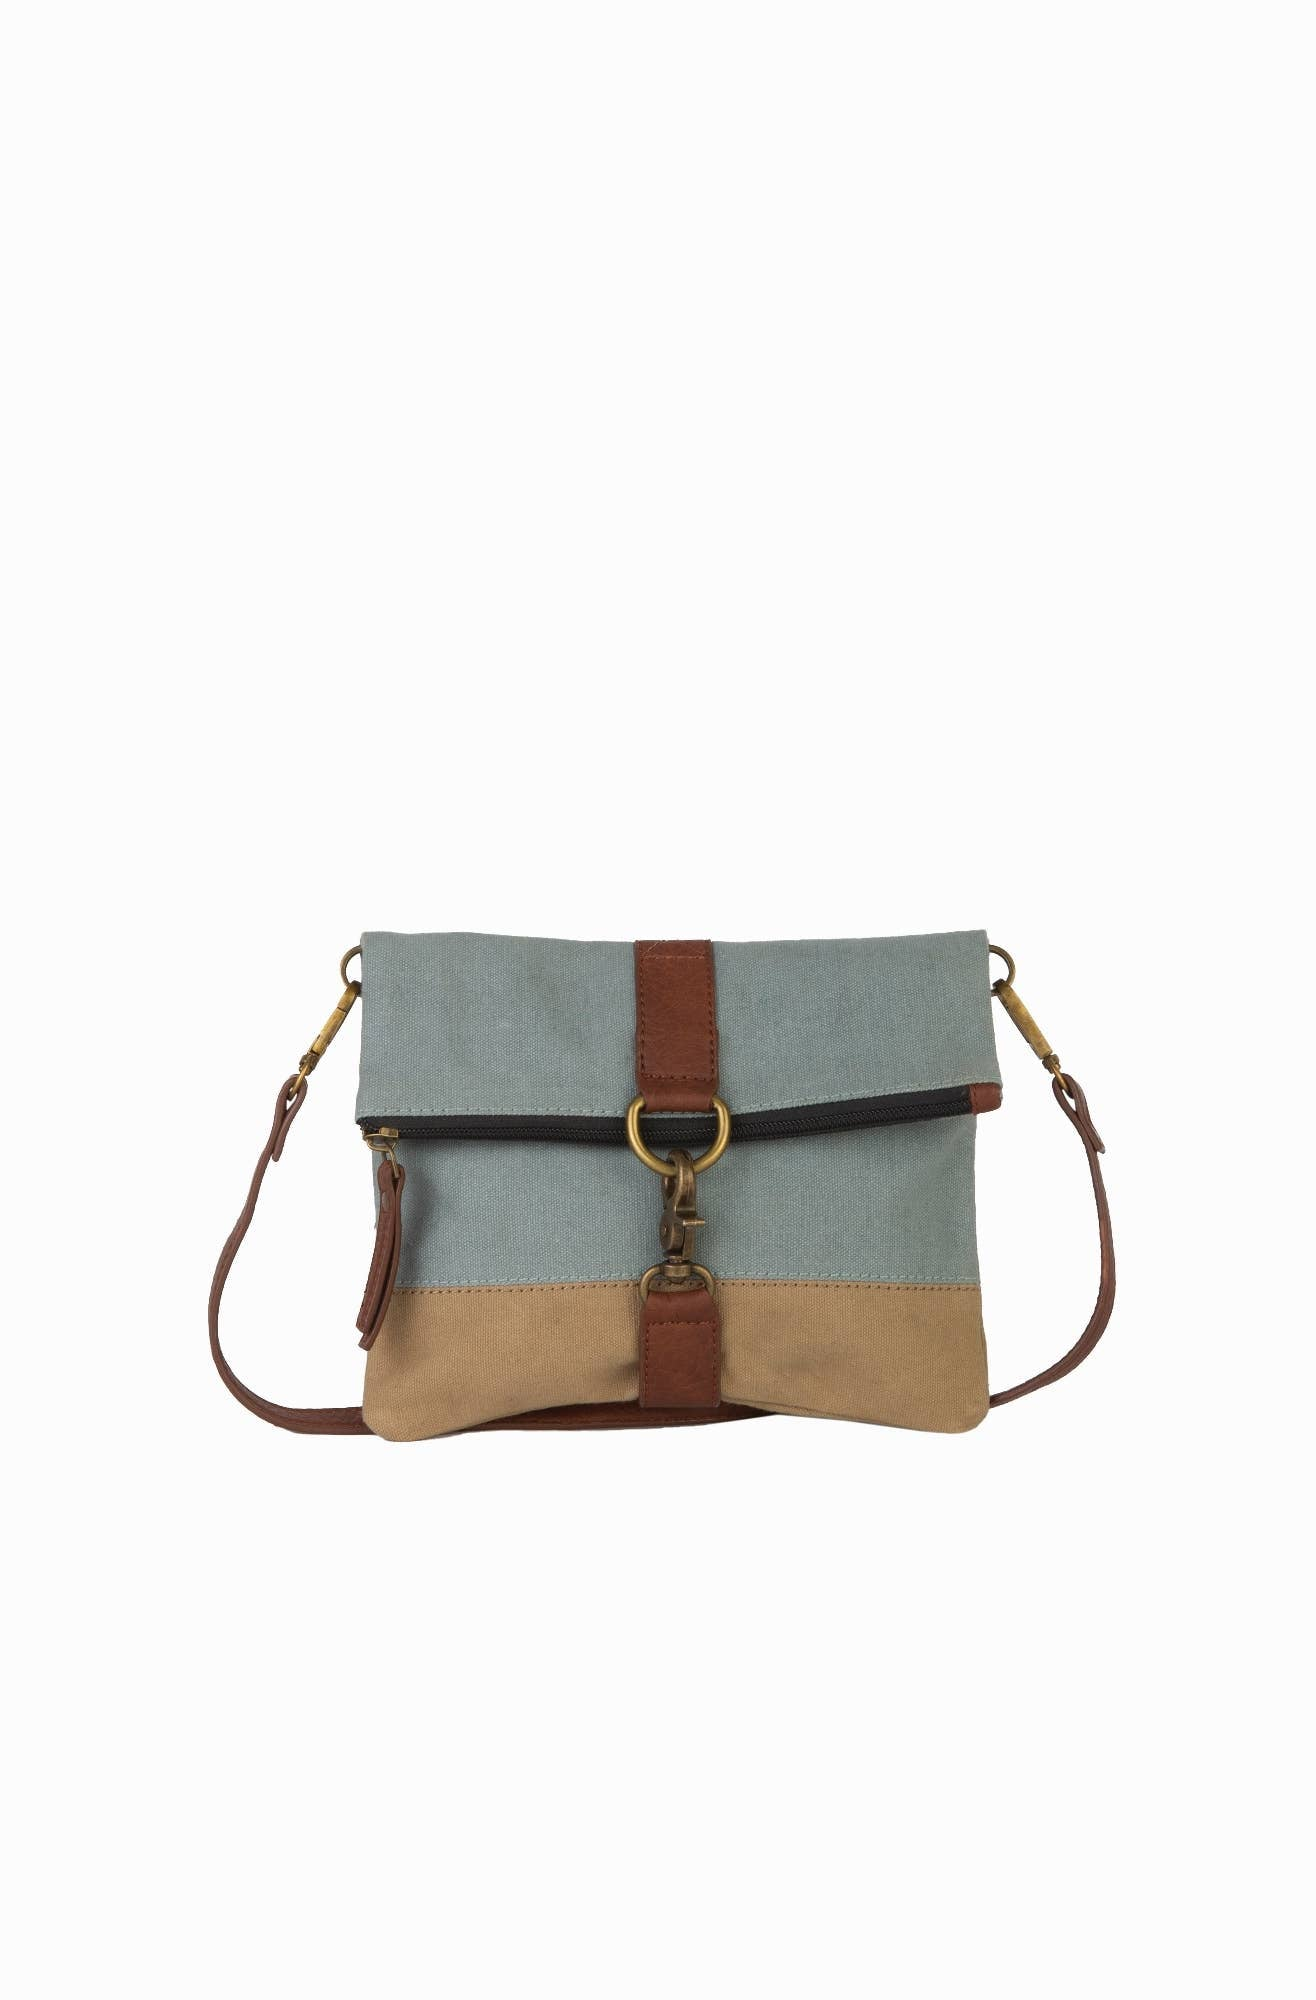 Mona B. - Finley Up-Cycled Canvas Fold-Over Convertible Cross-body